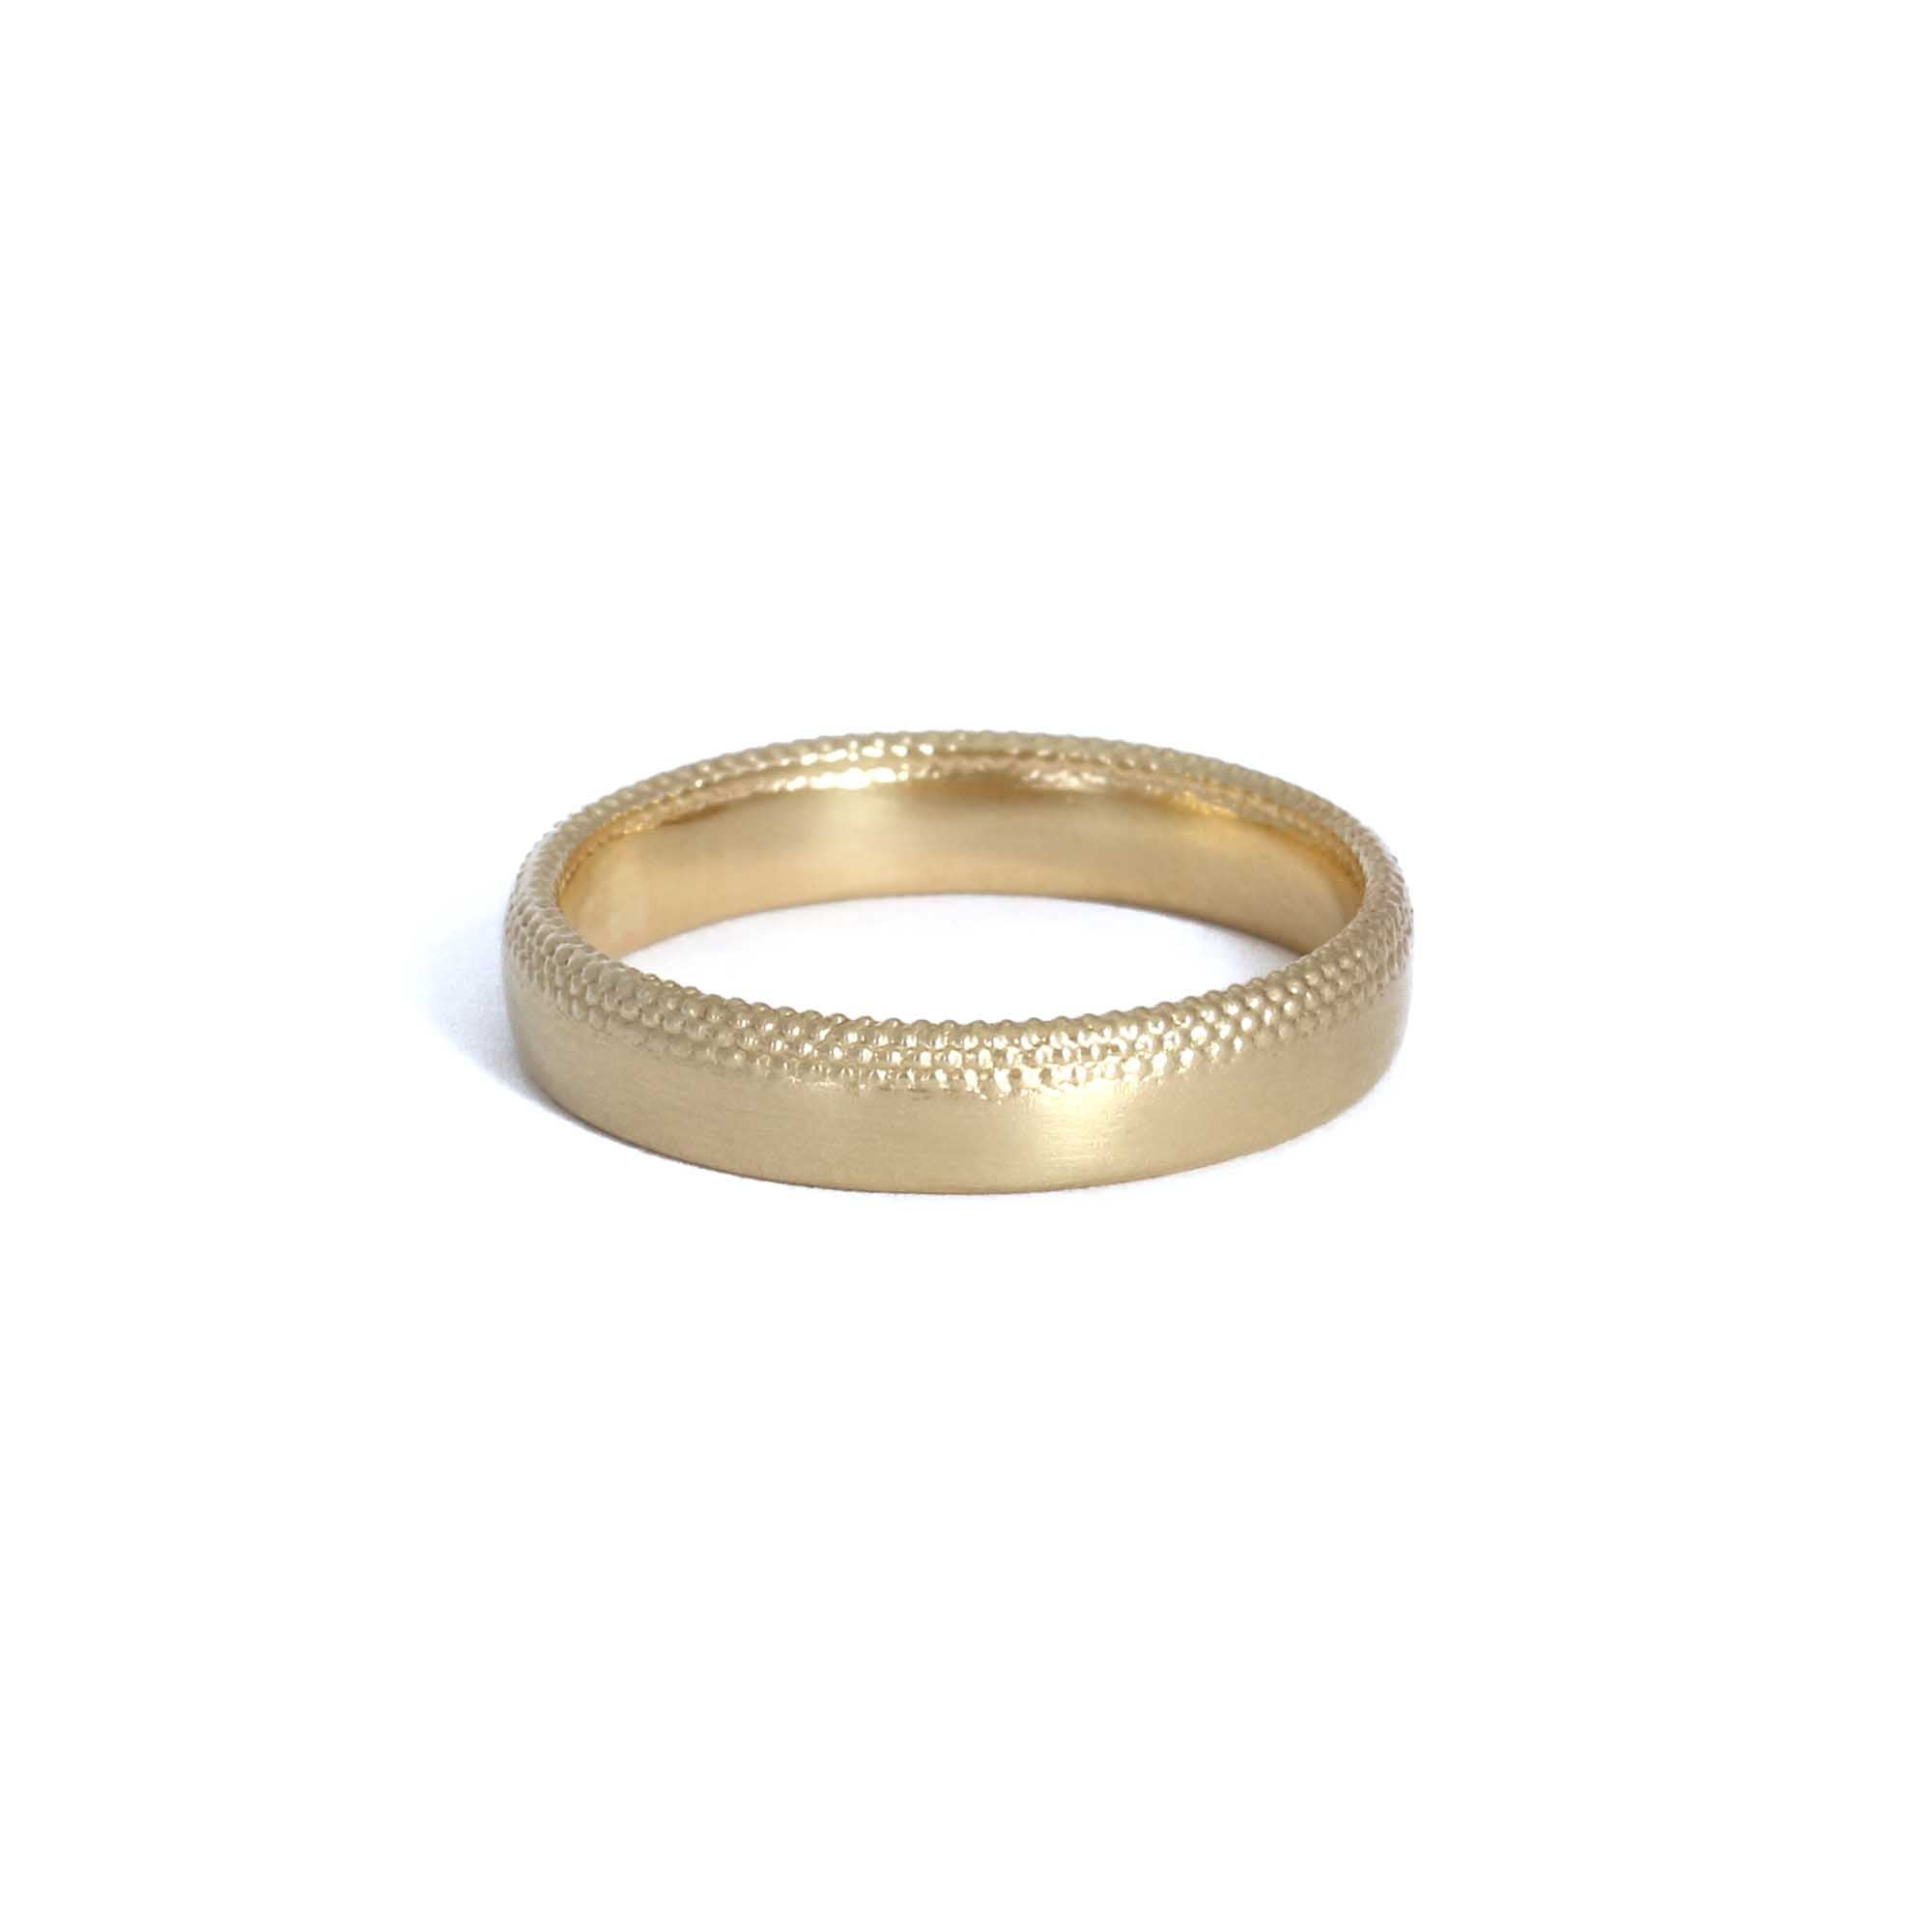 4.25mm Tyro Fade Band 9ct gold